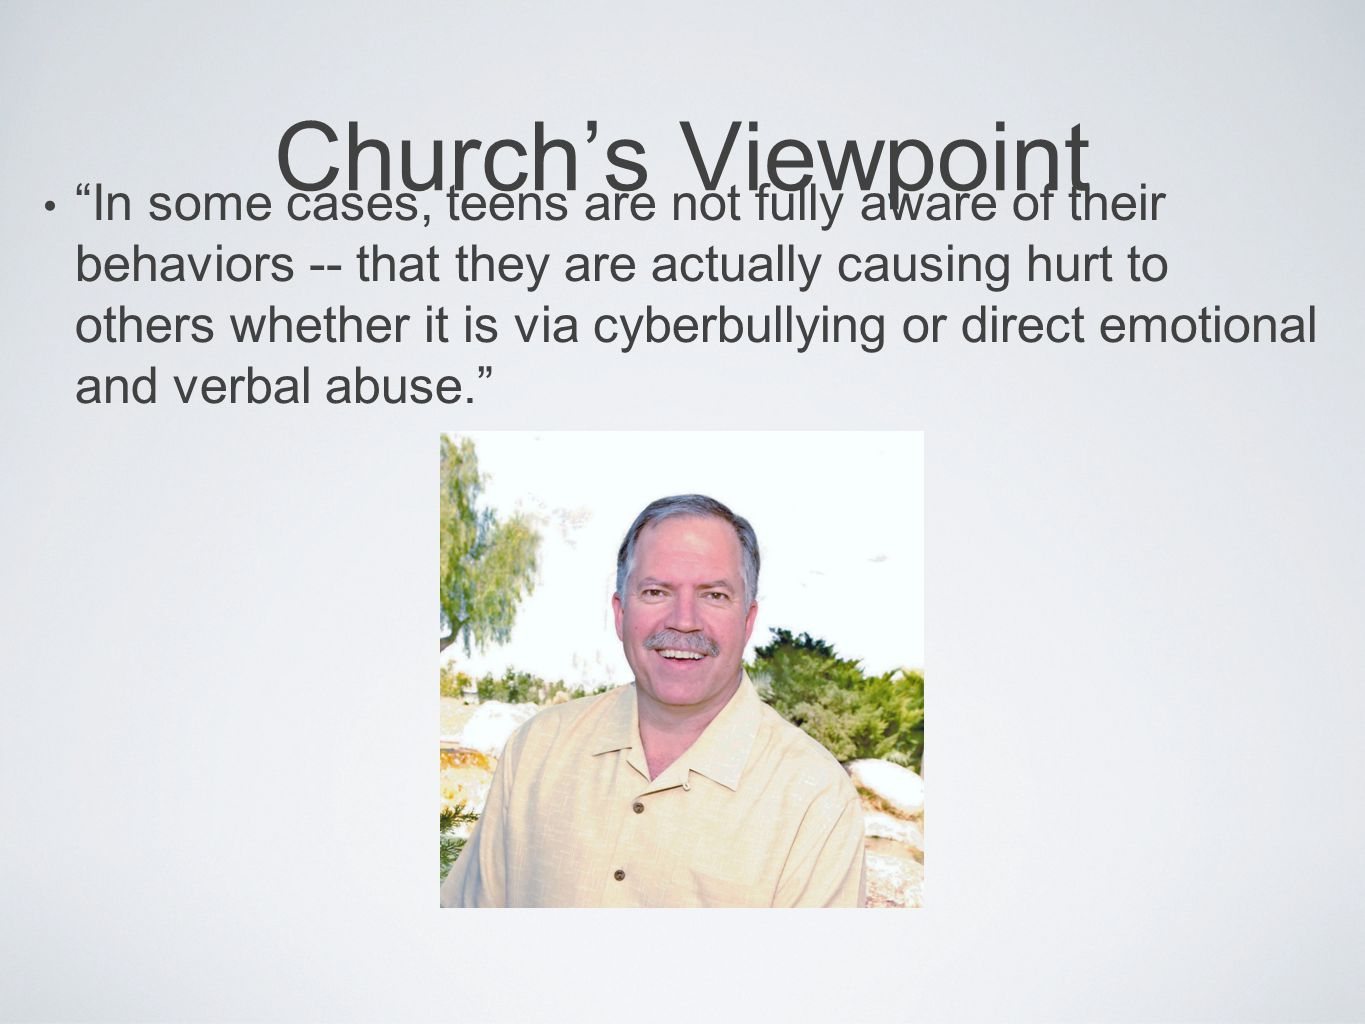 """Church's Viewpoint """"In some cases, teens are not fully aware of their behaviors -- that they are actually causing hurt to others whether it is via cyb"""